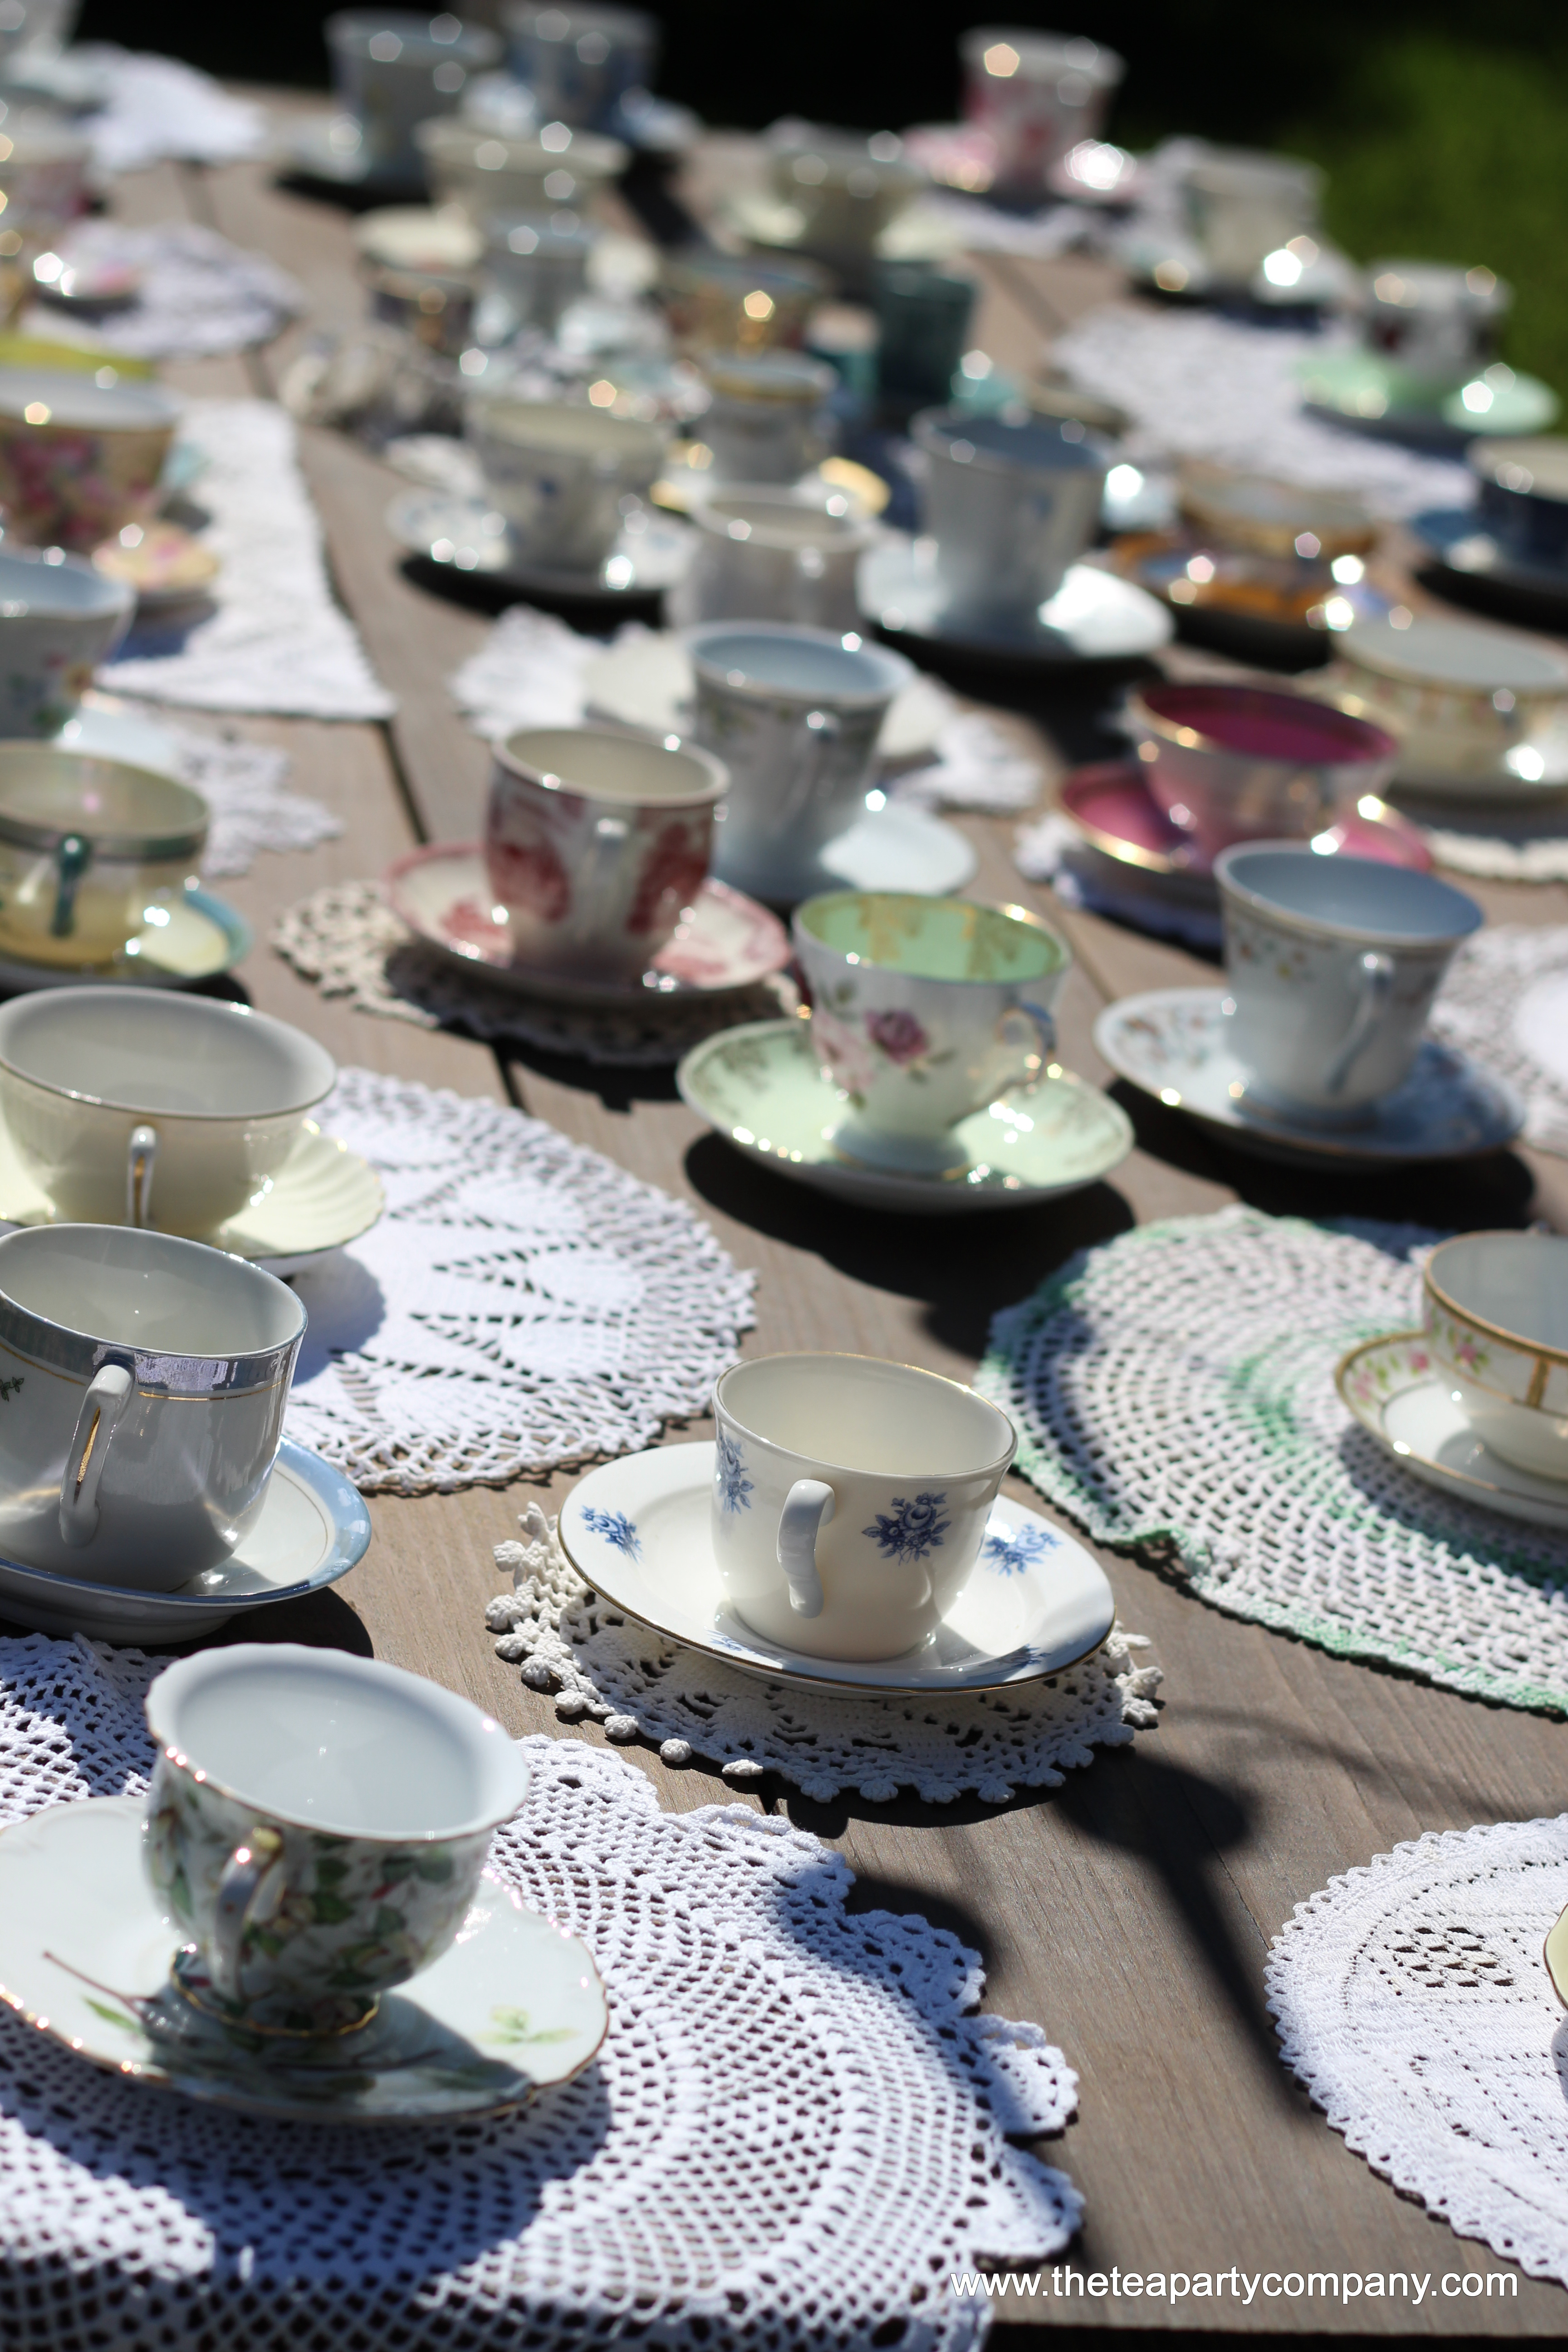 mismatched teacups and saucers collectio